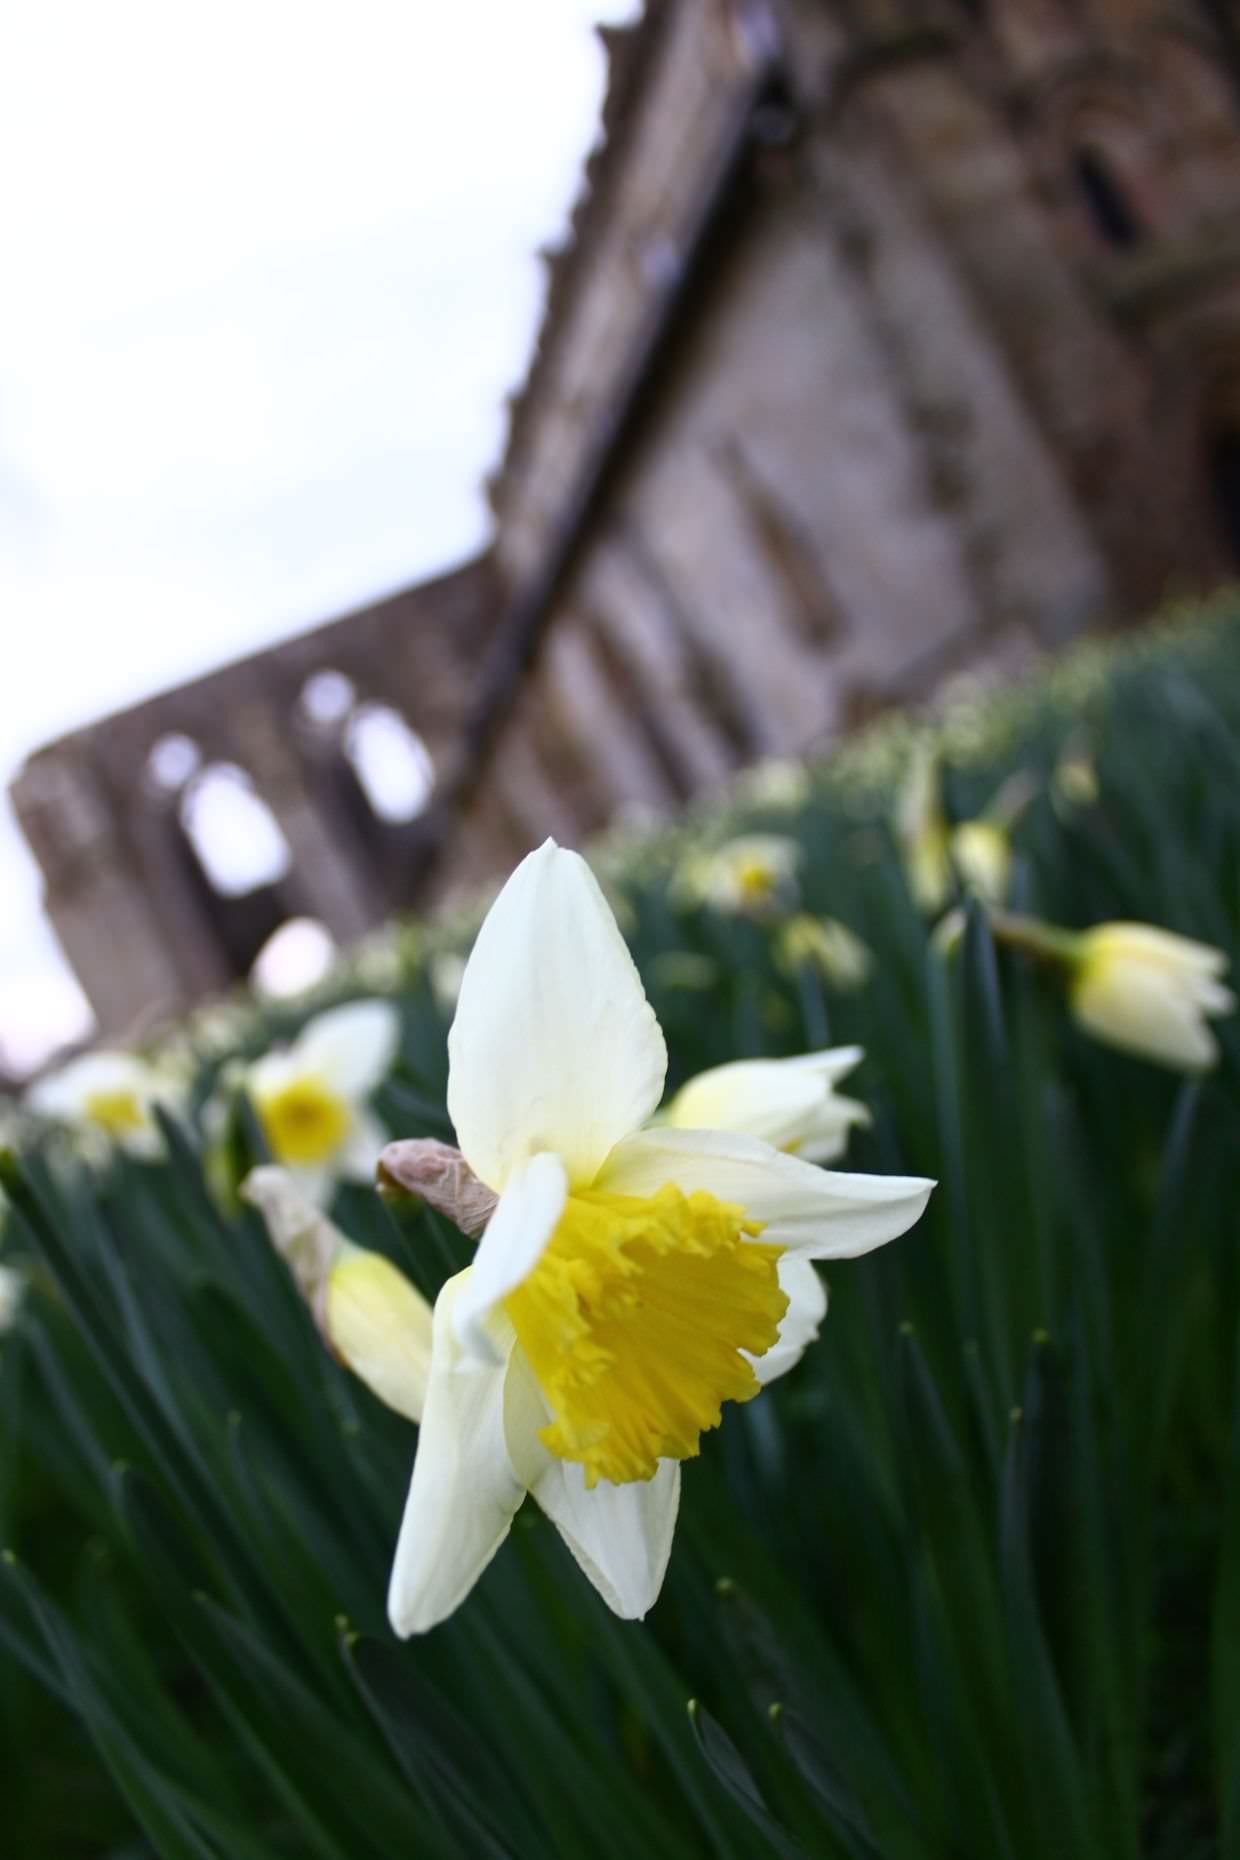 Daffodil outside the abbey